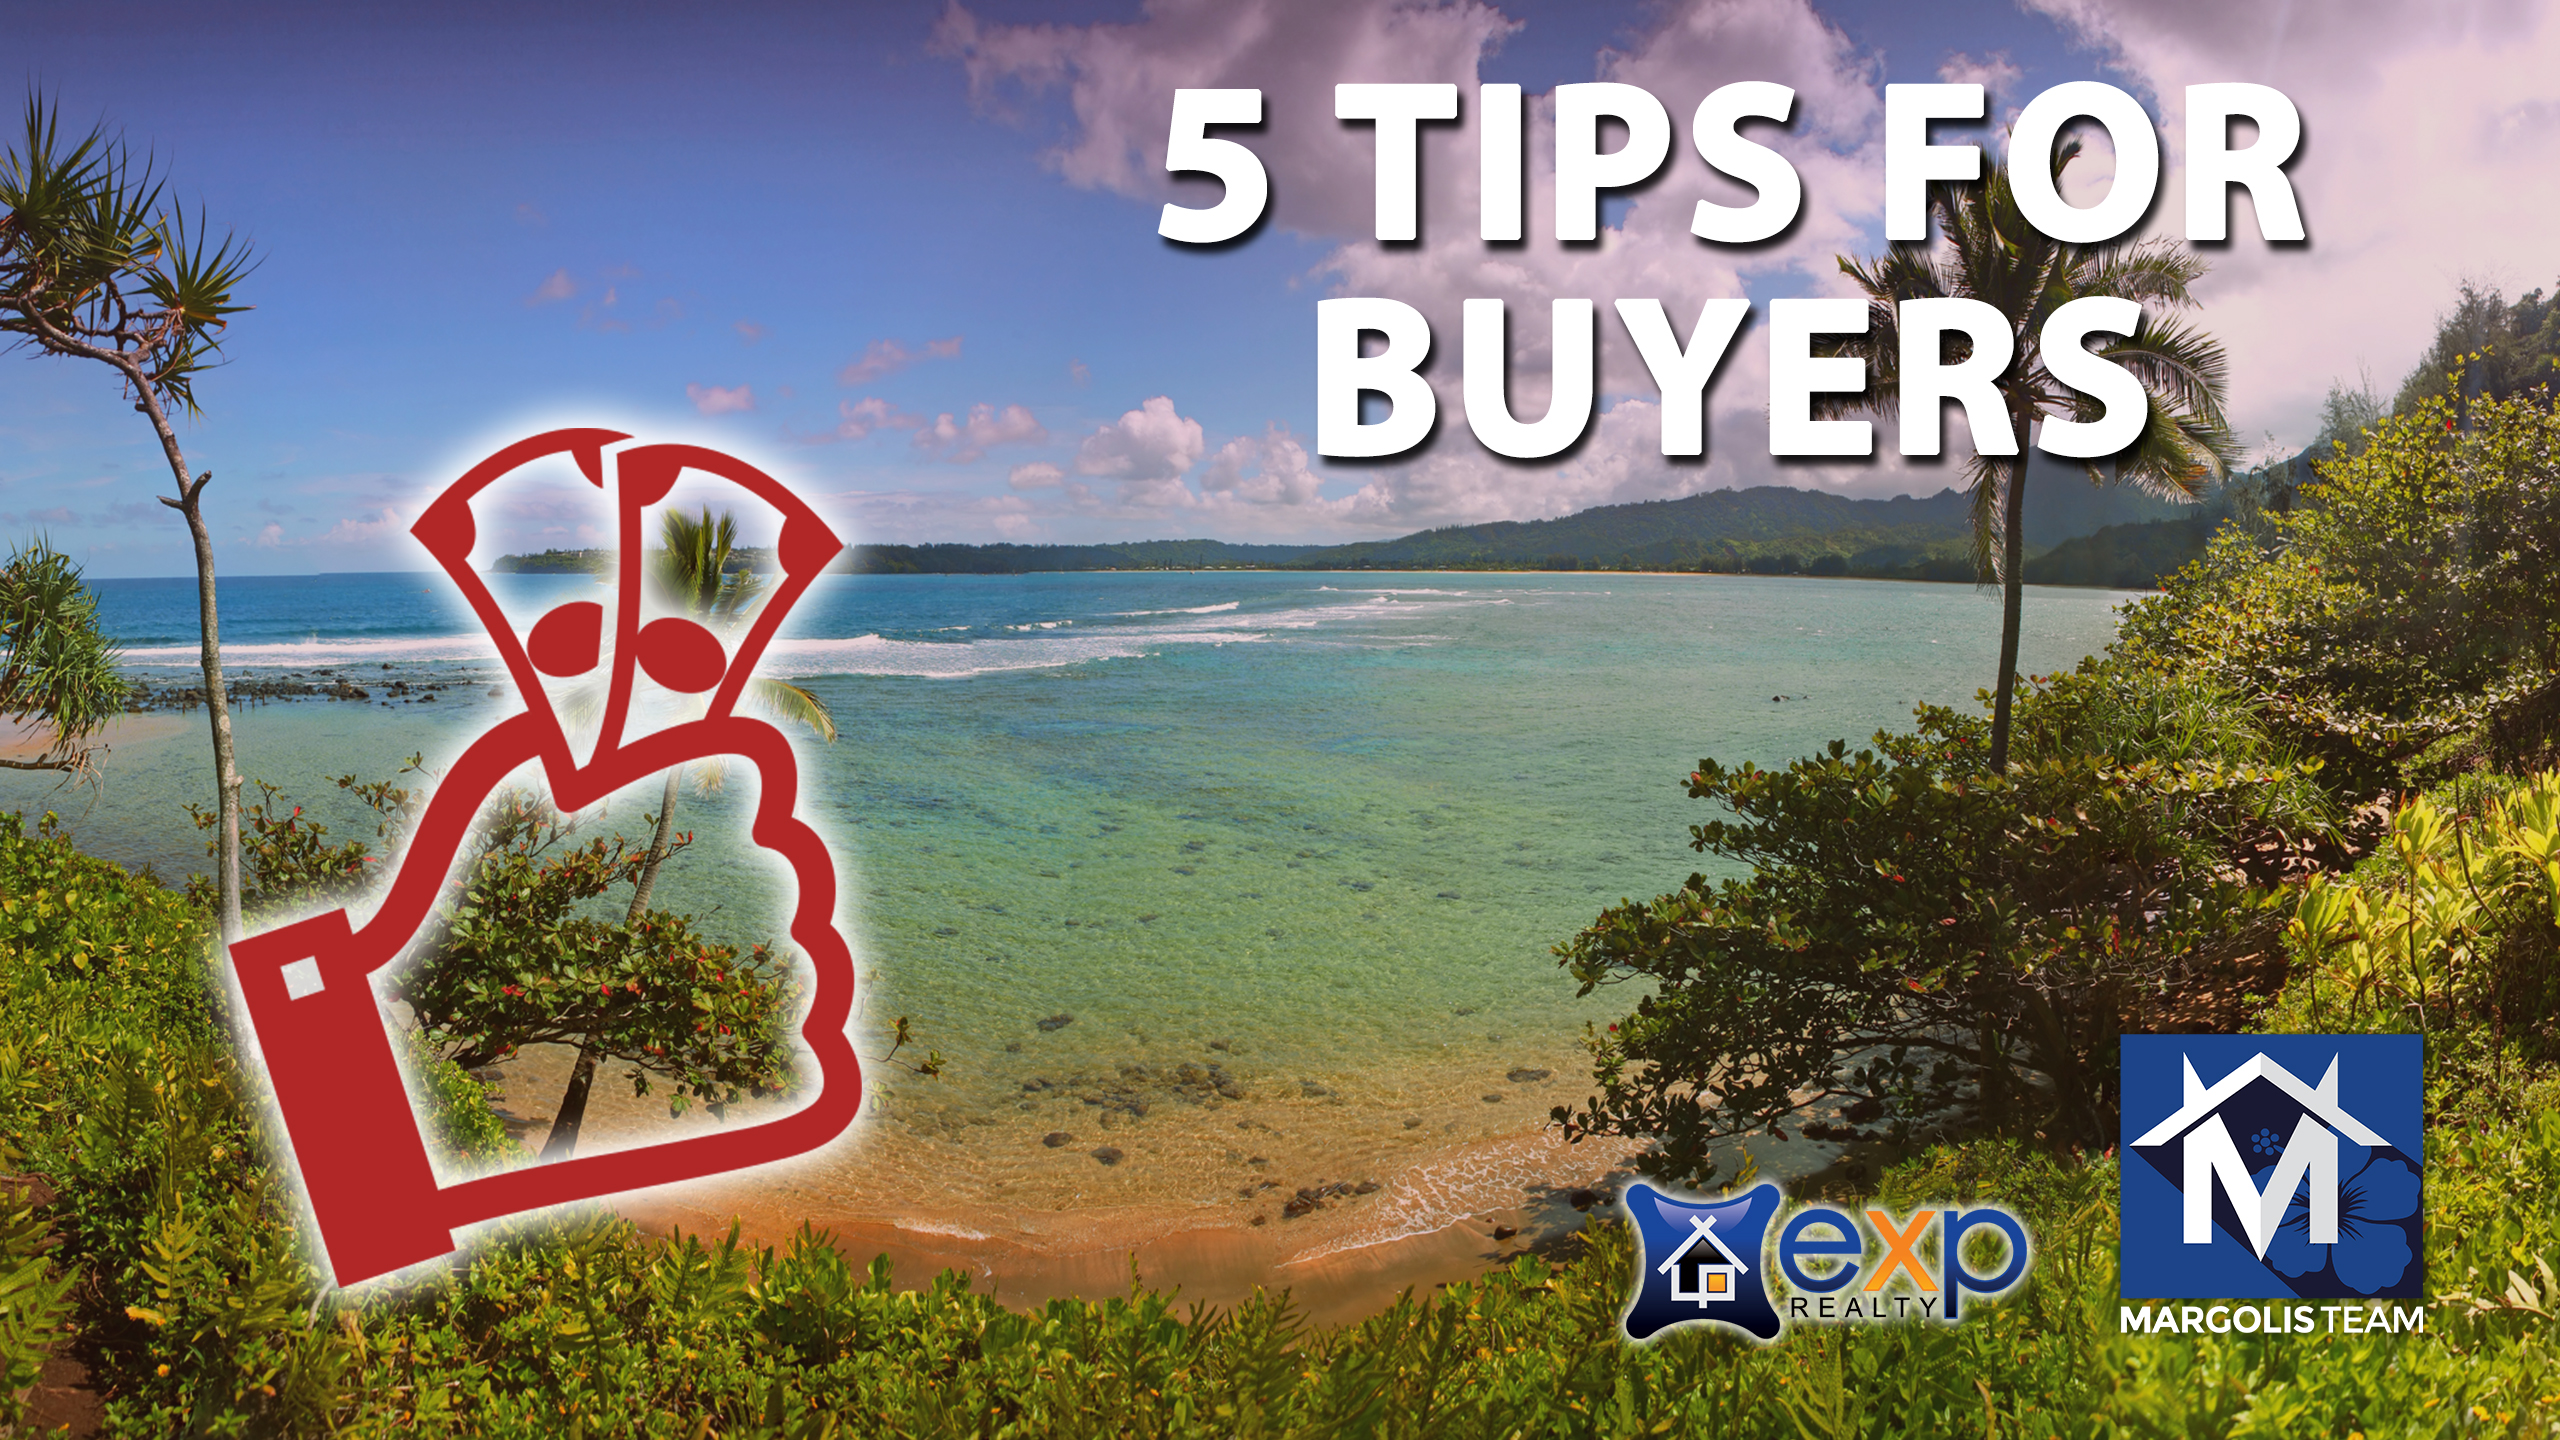 5 Homebuyer Tips